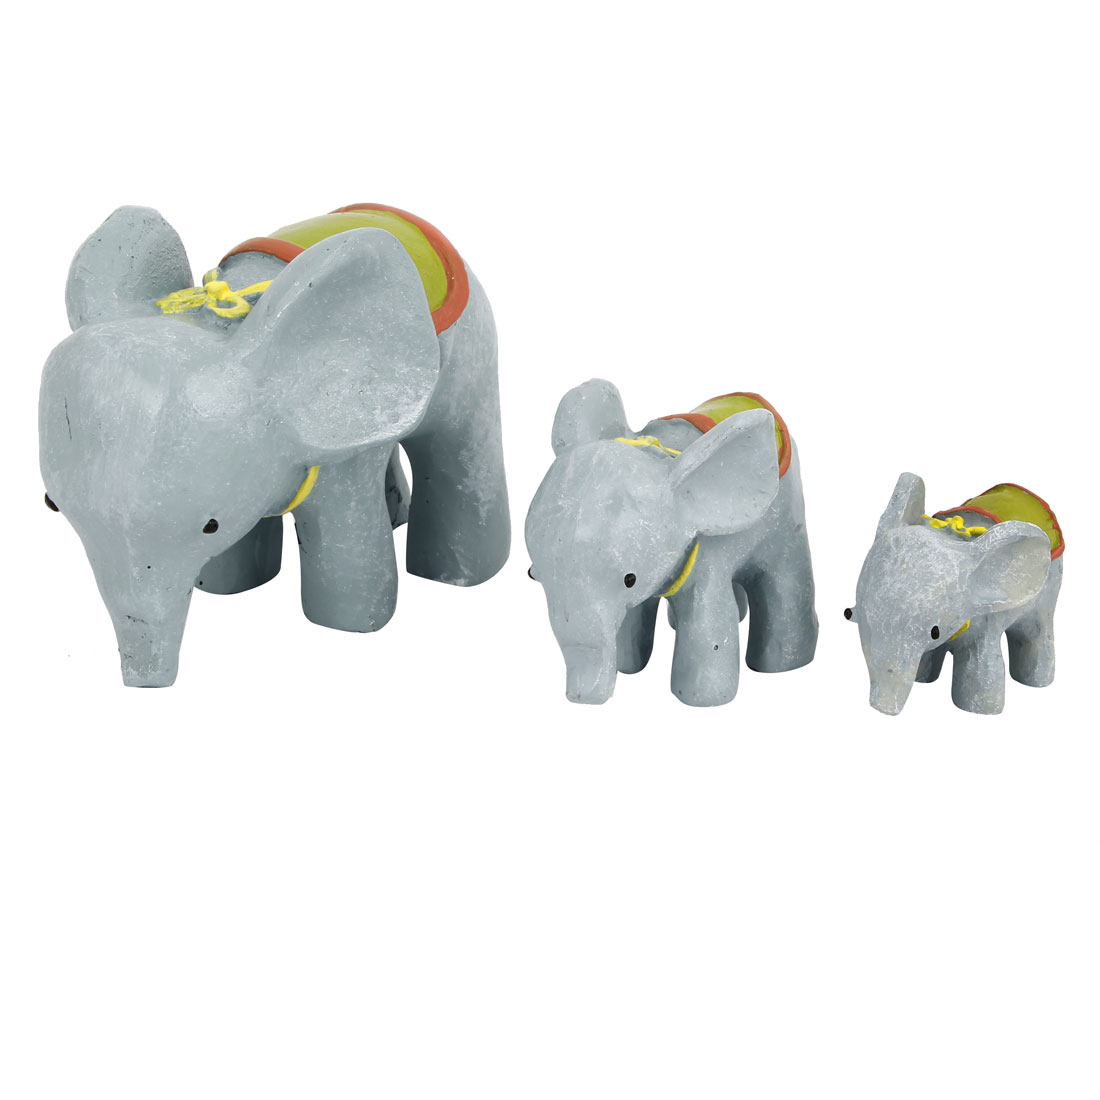 3 in 1 Tabletop Adorn Craft Elephant Decoration Gray